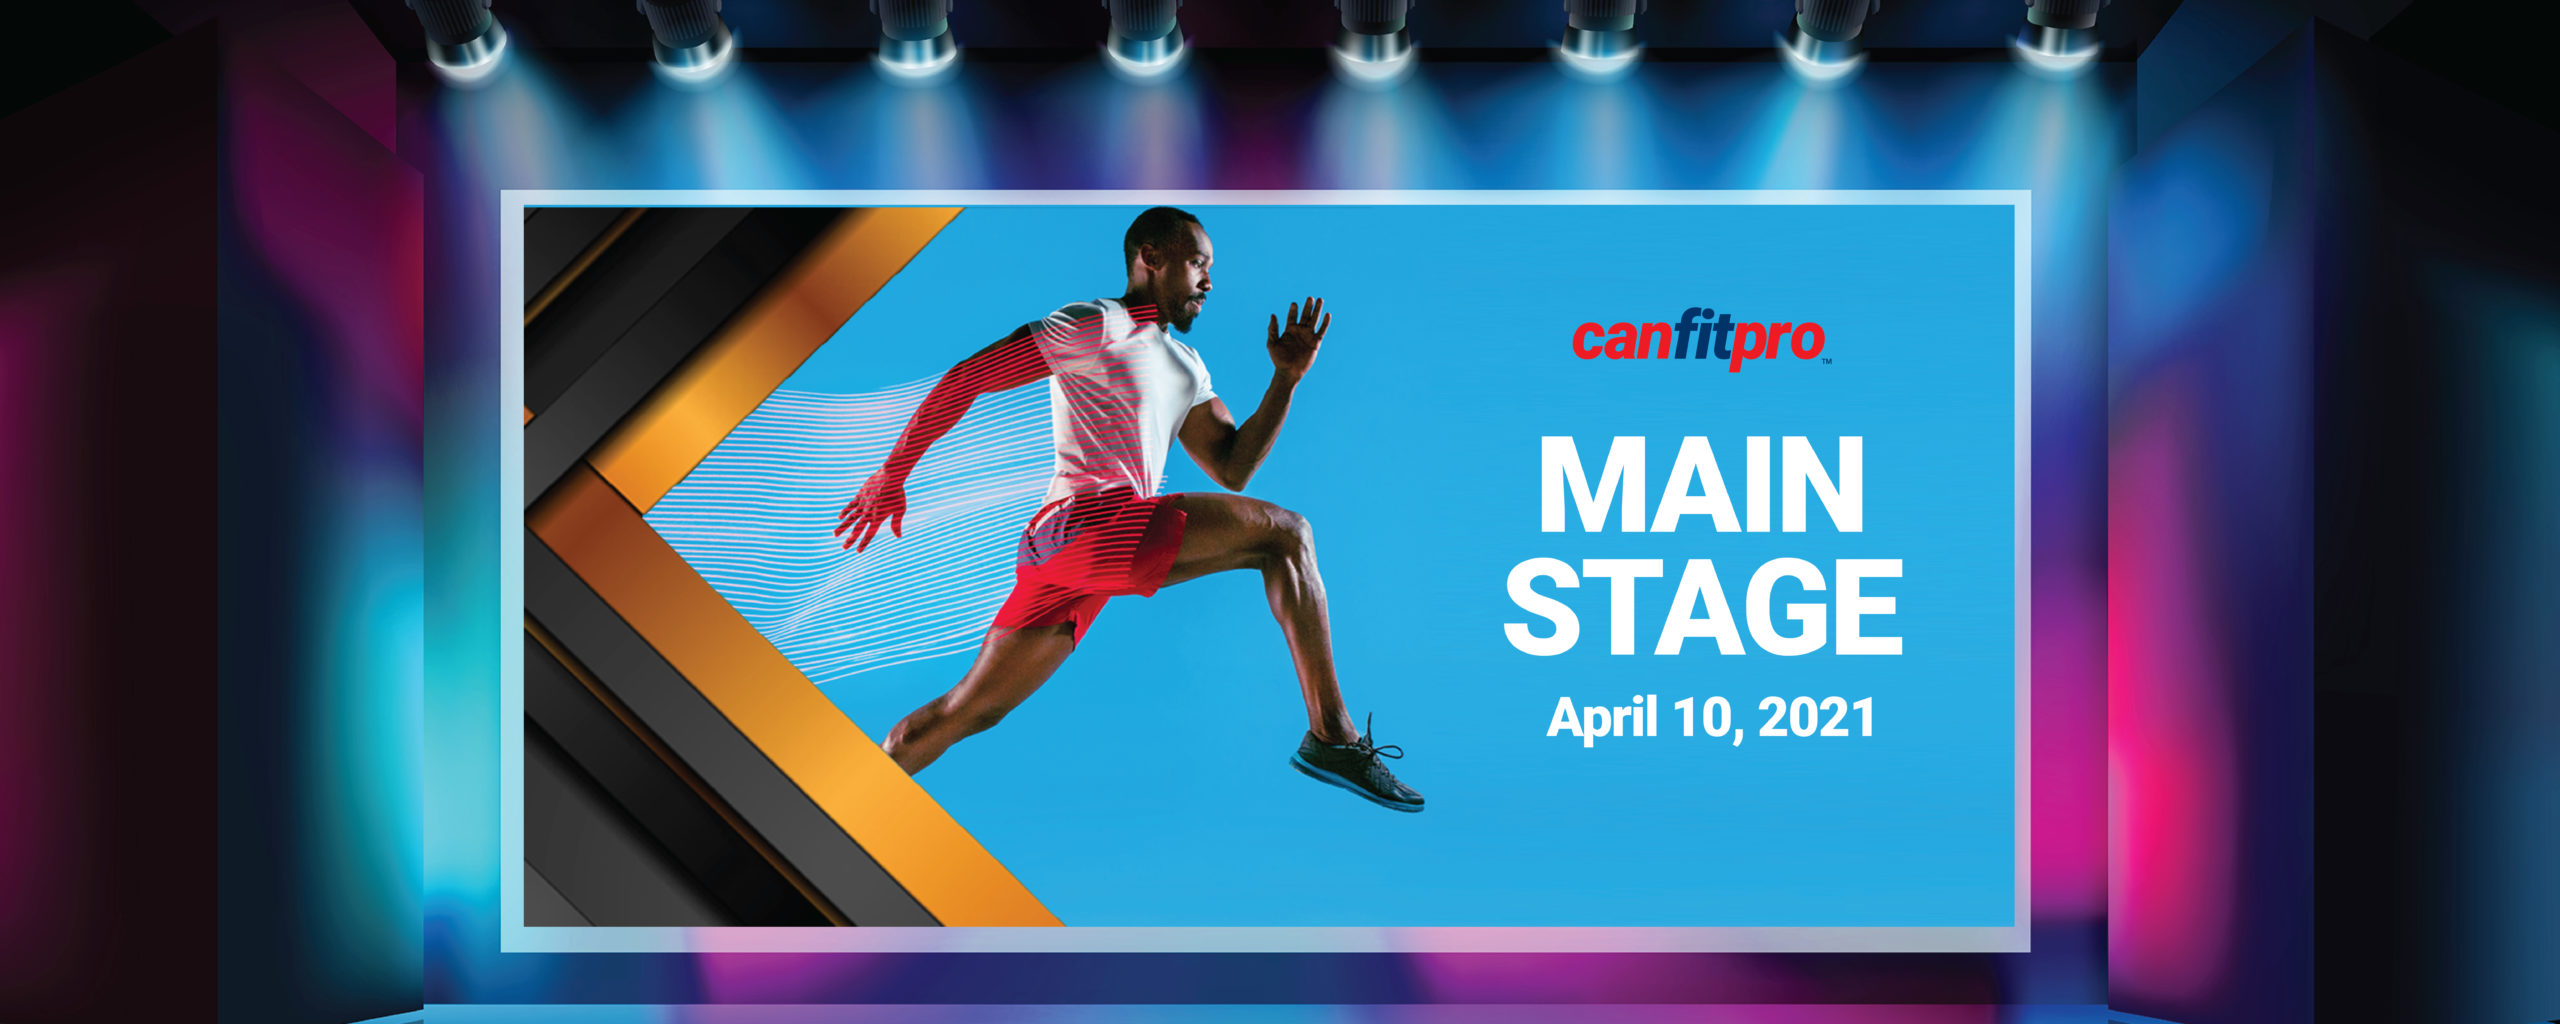 canfitpro main stage